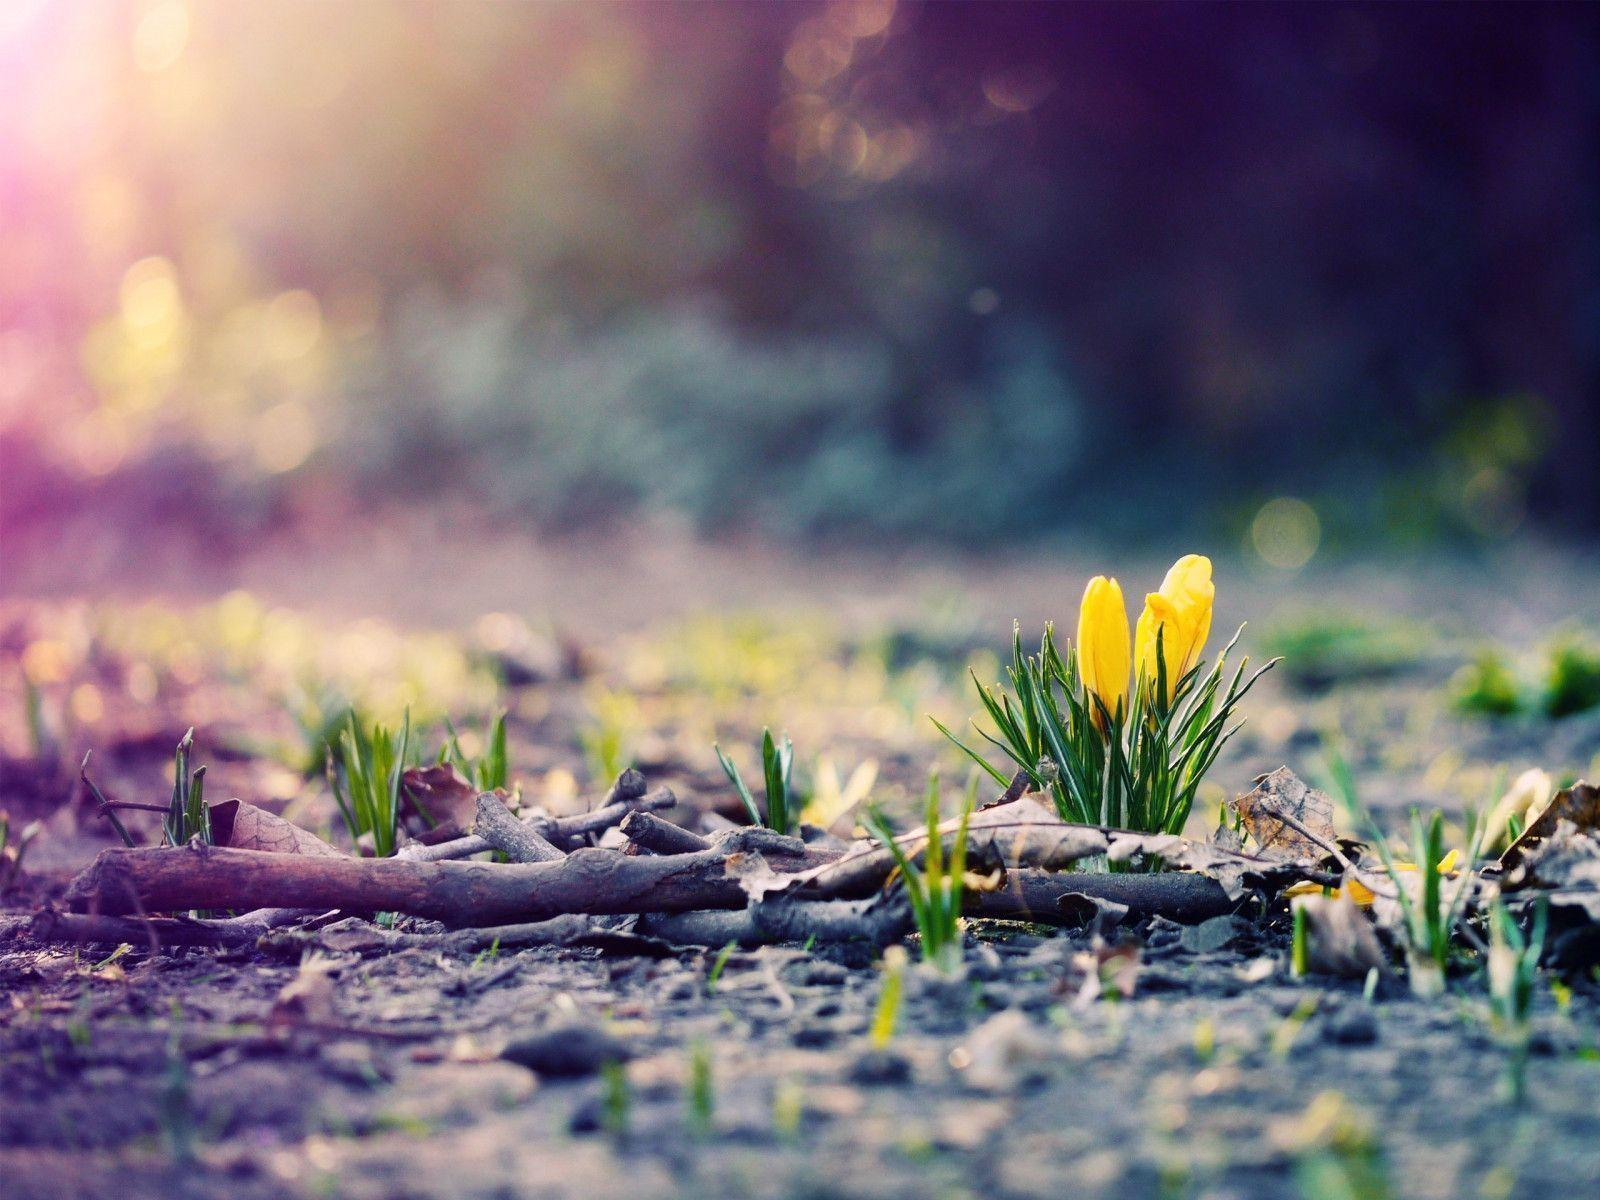 Spring Wallpaper - Wallpapers